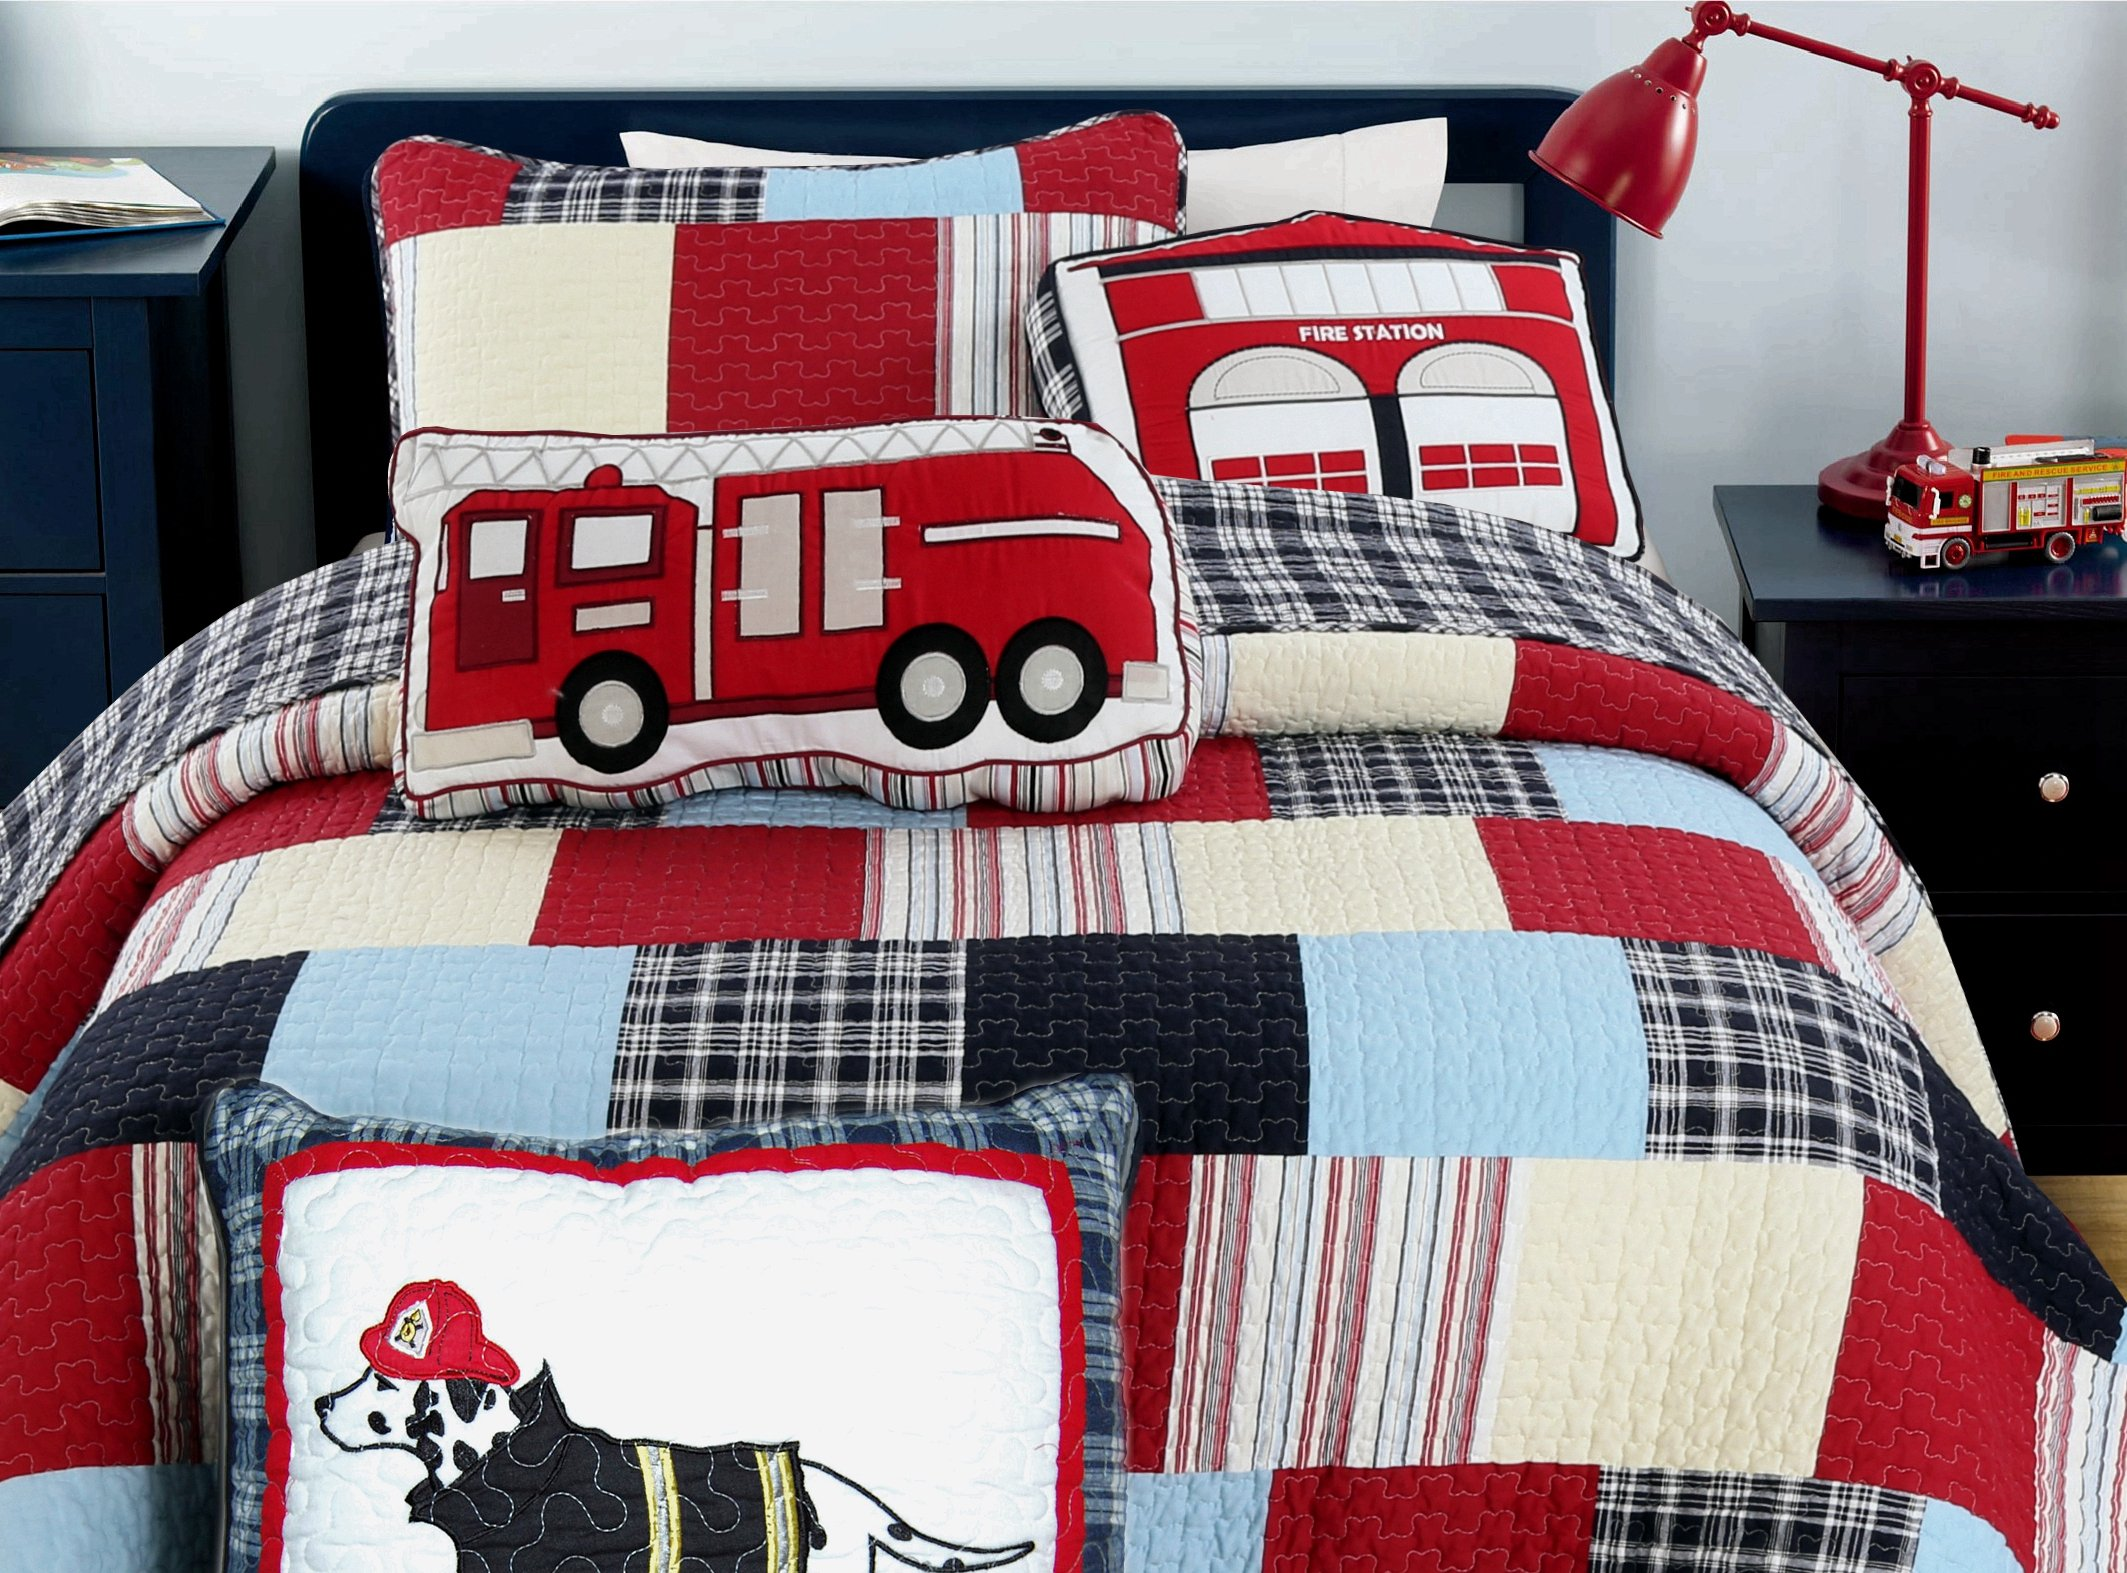 Cozy Line Home Fashion Cars Patchwork Bedding Quilt Set for Boy, 100% Cotton Navy/Blue/Red Grid Stripe Printed Reversible Bedspread Coverlet for Kids(Thomas Firetruck Patchwork, Twin - 2 Piece) by Cozy Line Home Fashions